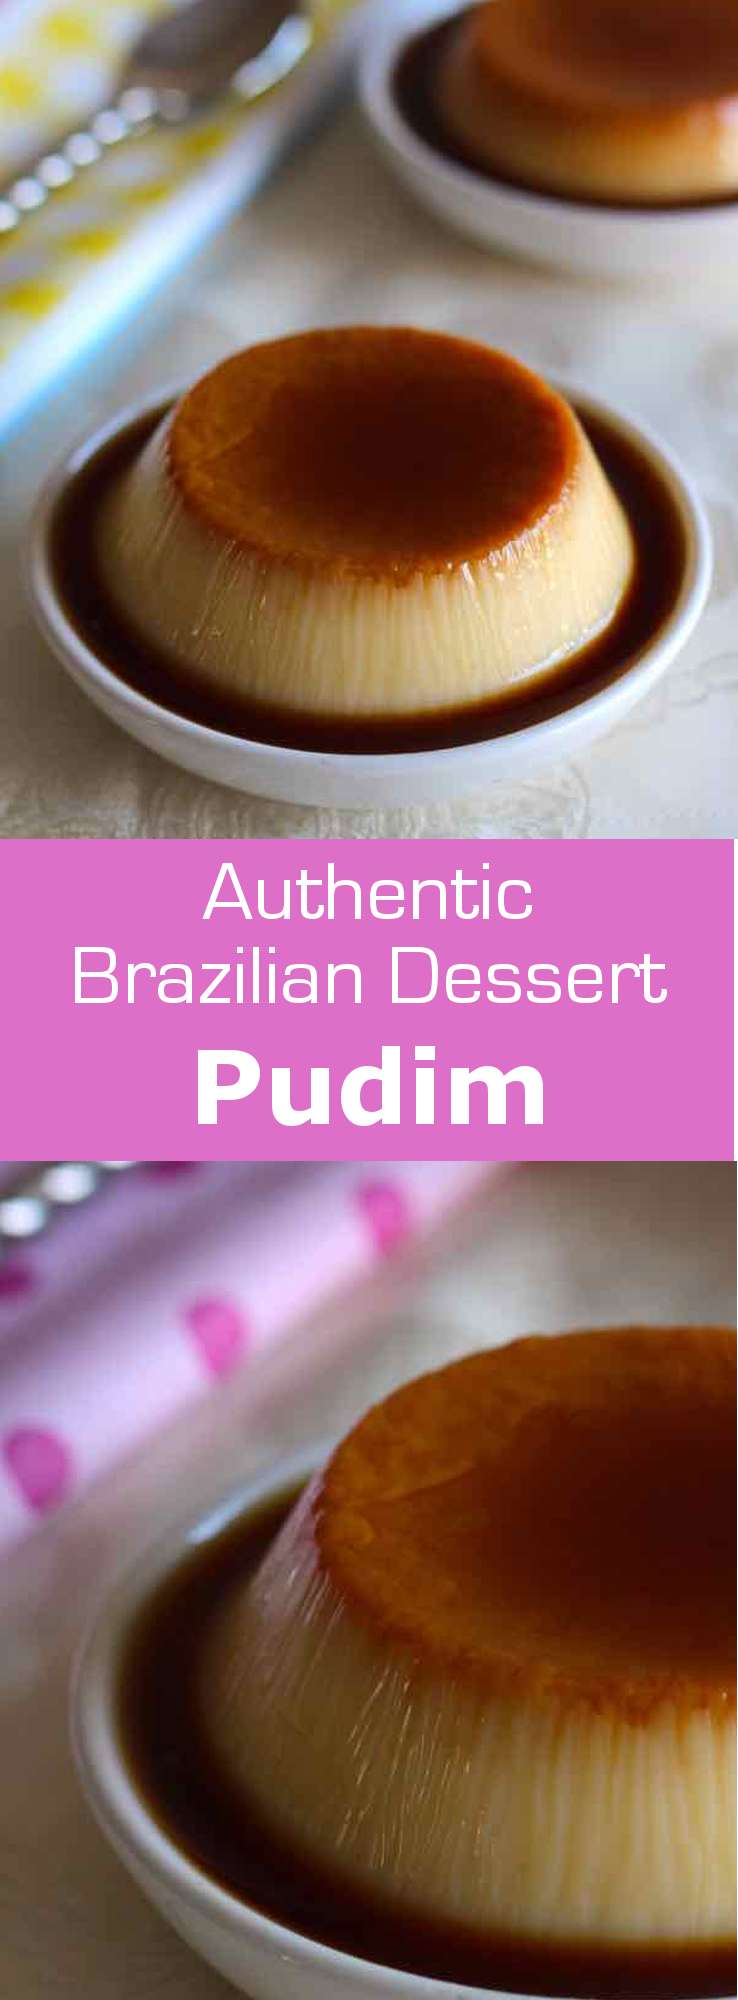 Pudim de leite condensado is a popular Brazilian and Portuguese custard recipe, prepared with condensed milk, sugar and eggs. #Brazil #dessert #196flavors